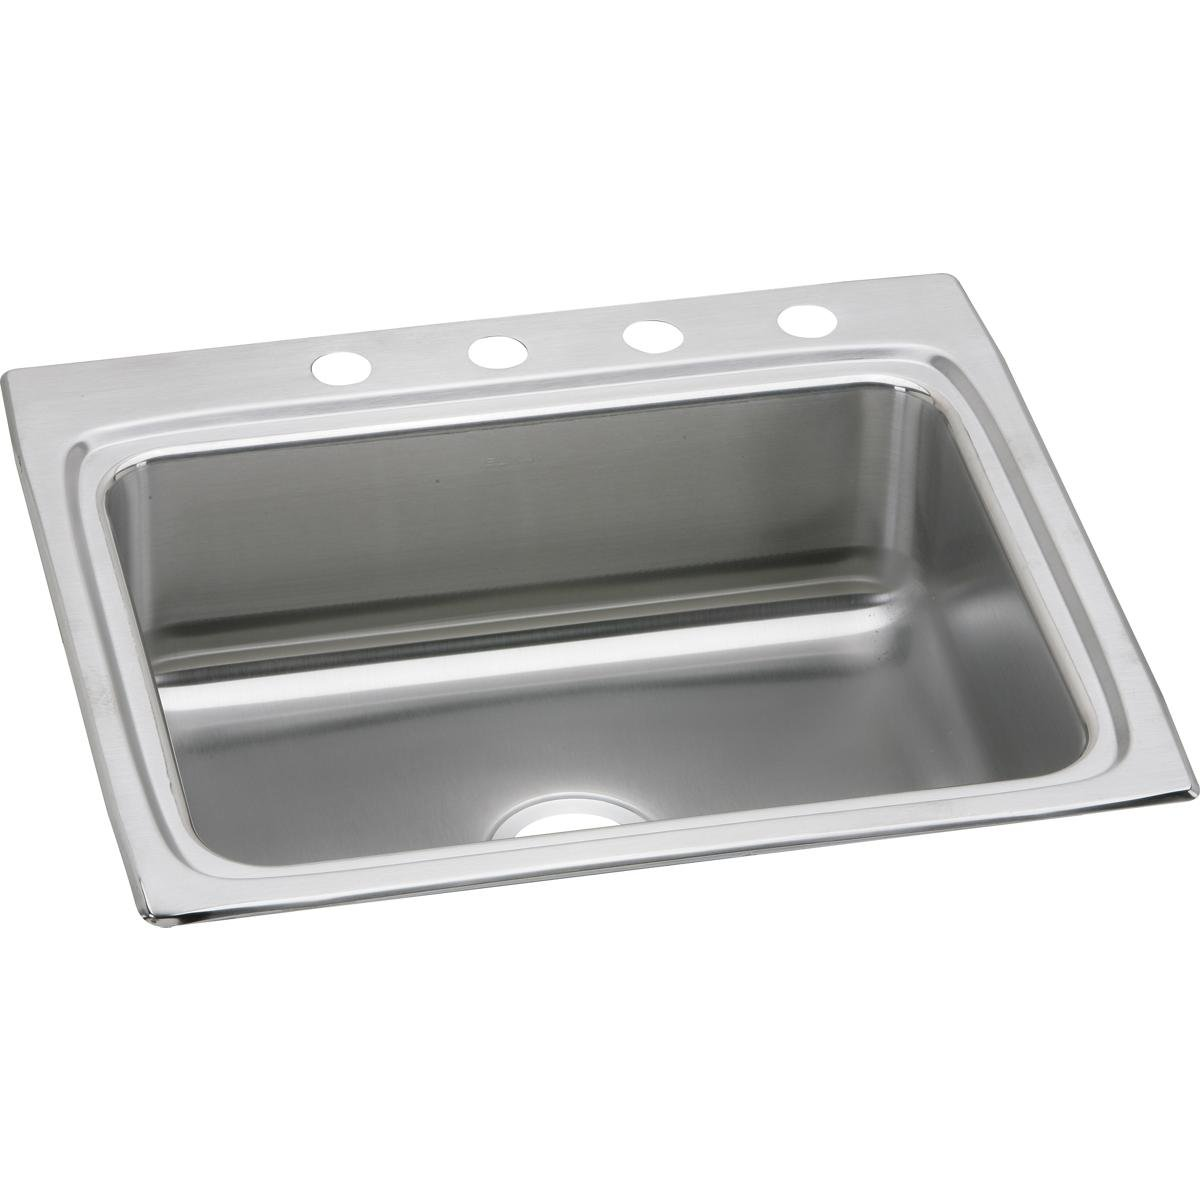 Elkay Lustertone Classic LR25221 Single Bowl Drop-In Stainless Steel Sink